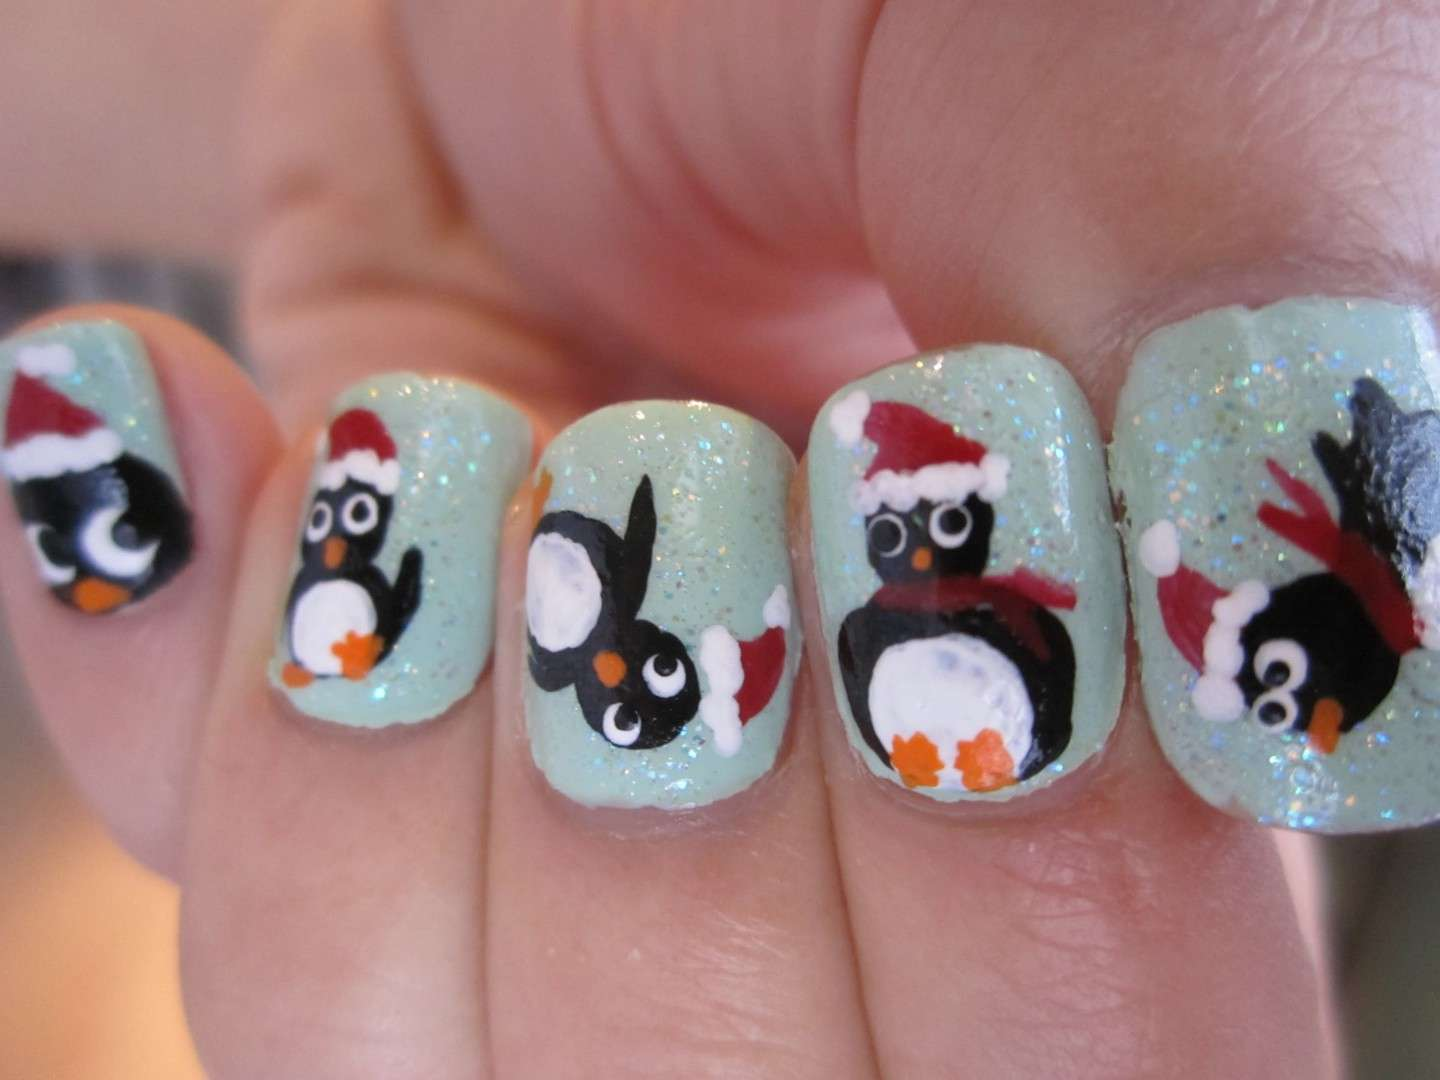 Divertente nail art con pinguino